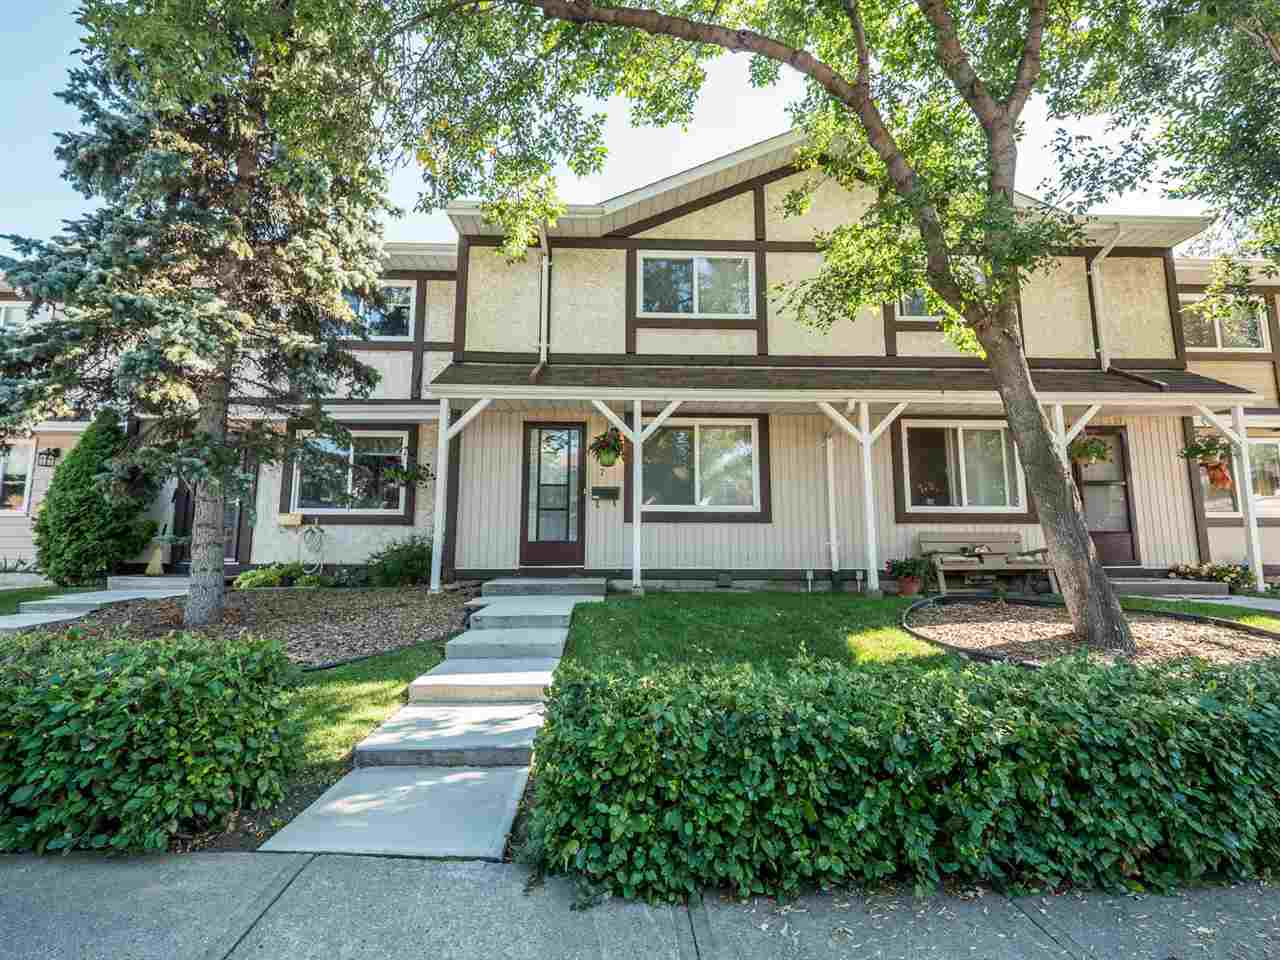 Main Photo: 117 TUDOR Lane in Edmonton: Zone 16 Townhouse for sale : MLS® # E4077778